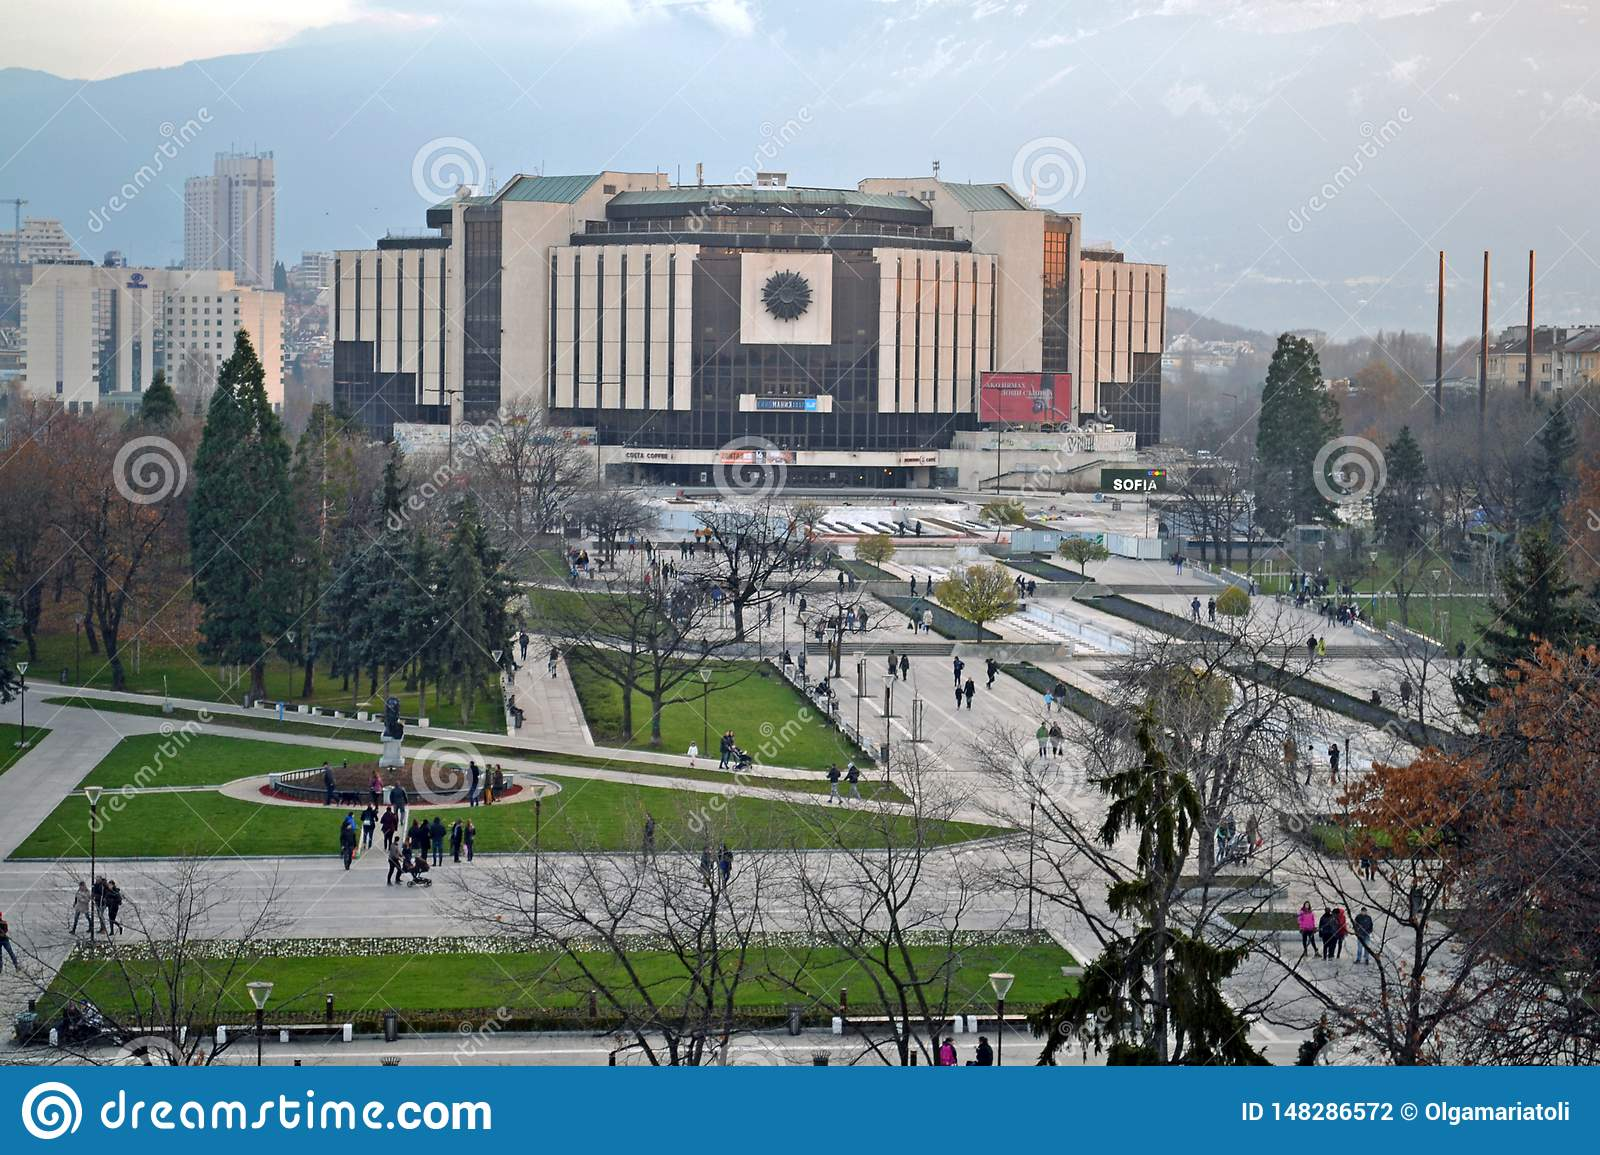 Sofia / Bulgaria - November 2017: Balcony view of the National palace of culture NDK, the largest, multifunctional conference